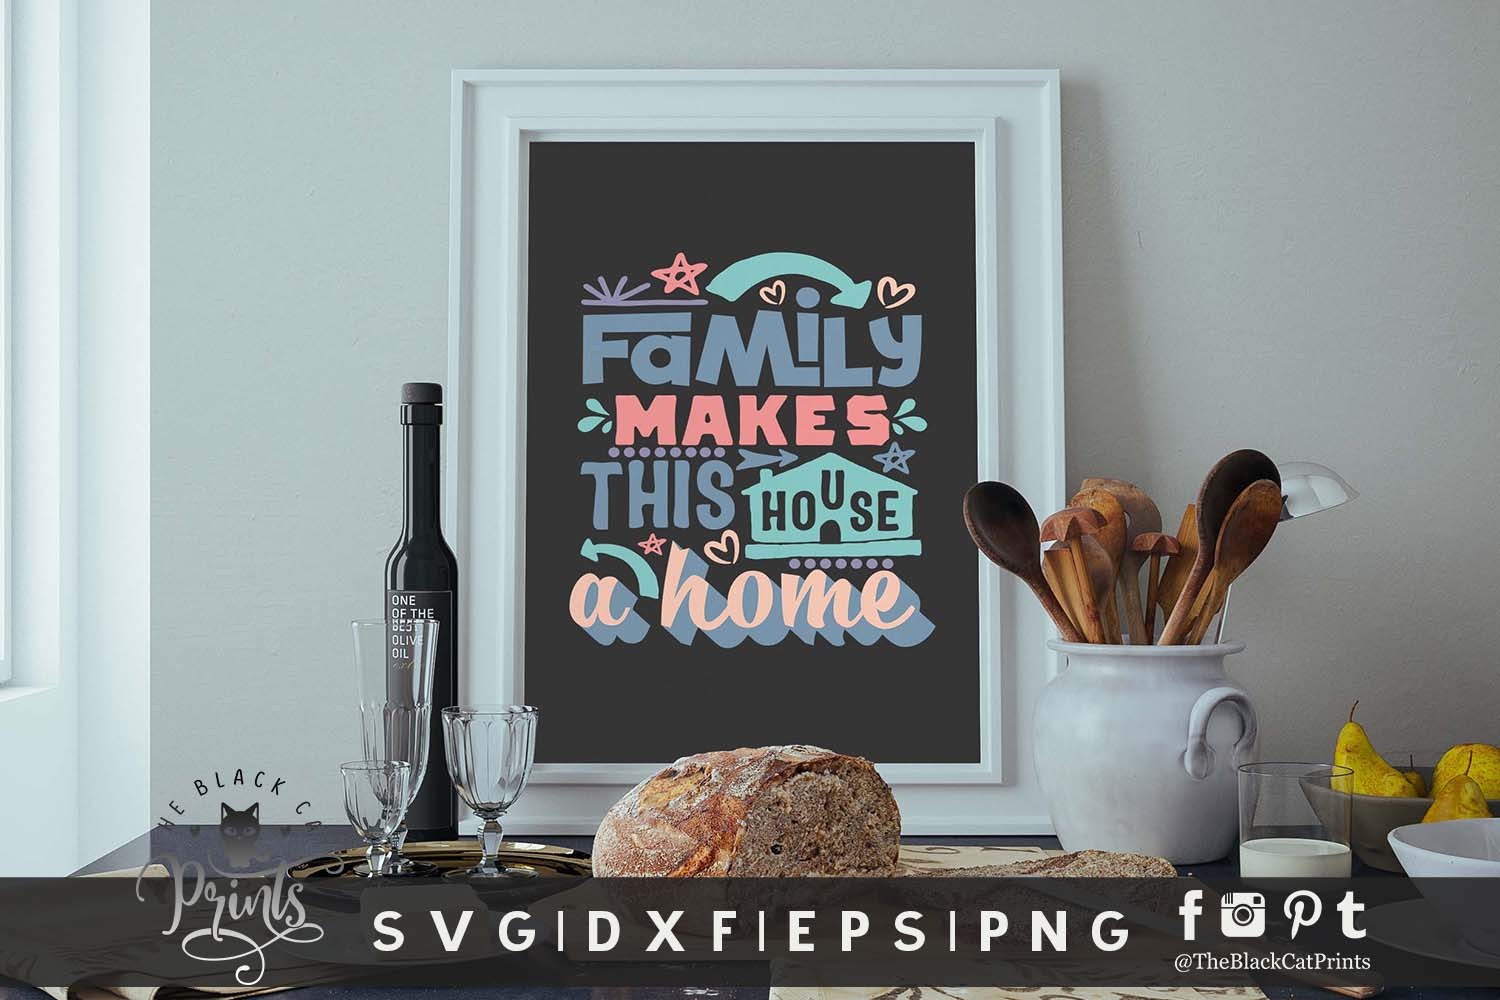 Family Makes This House a Home SVG DXF EPS PNG Family svg example image 5